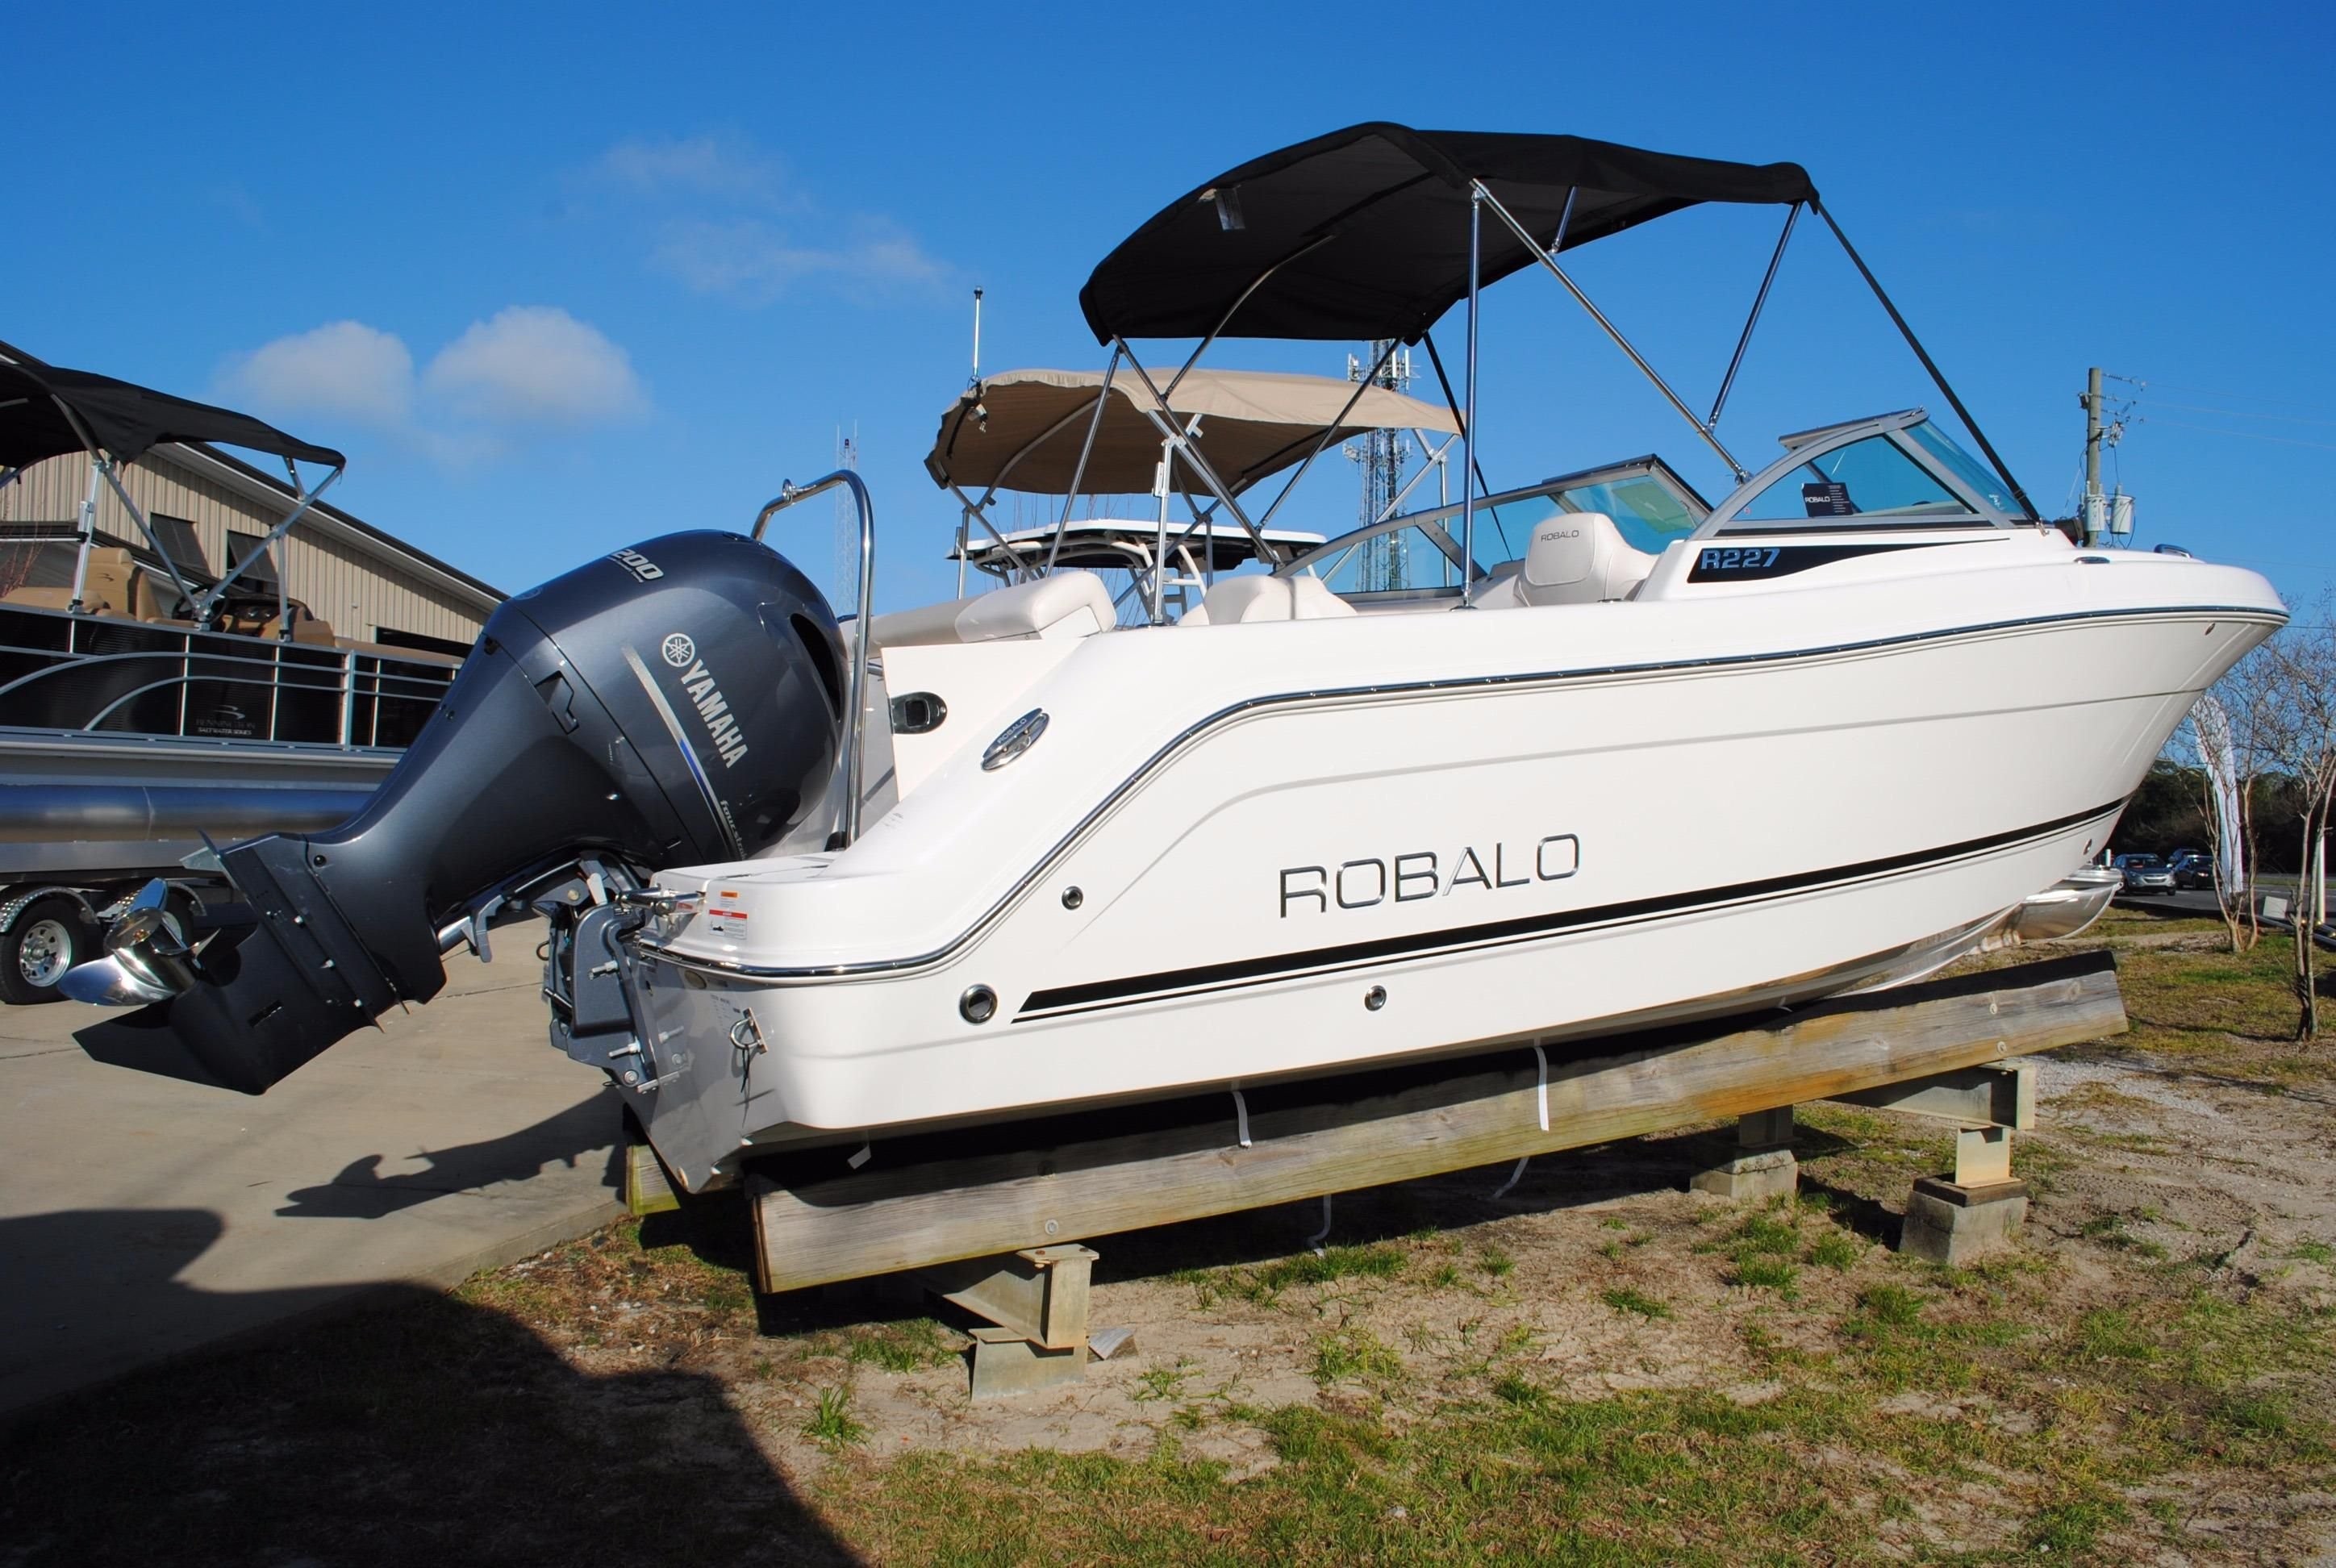 2017 robalo 227 dual console power boat for sale www for Robalo fish in english